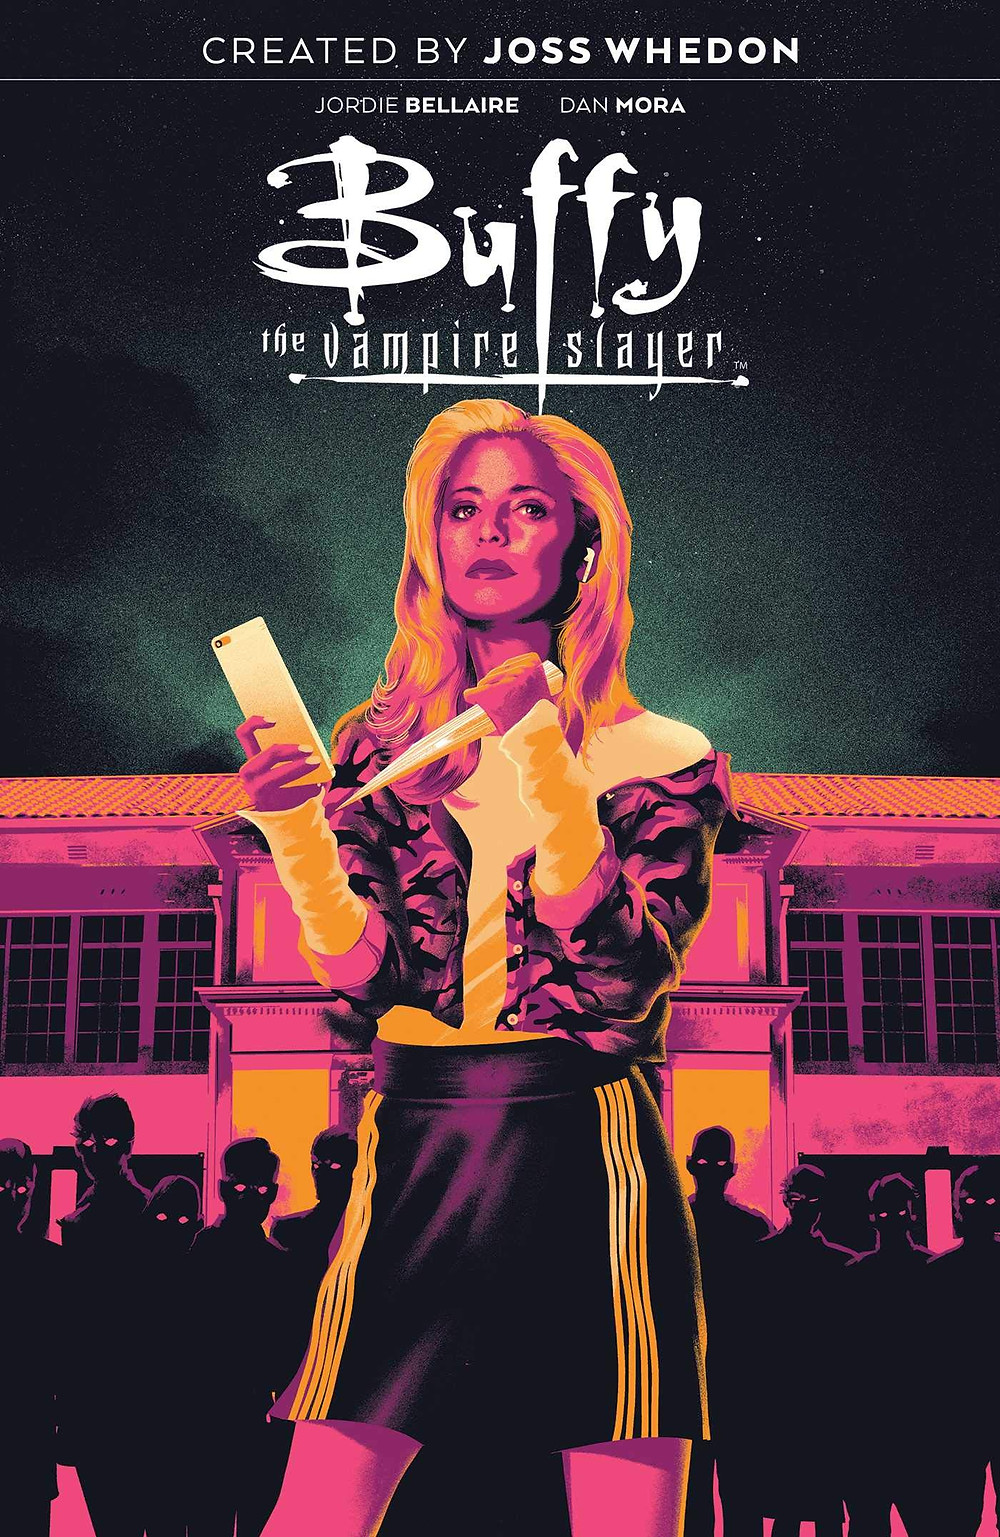 On the cover of issue one of Buffy the Vampire Slayer, a girl stands in front of a school wearing a skirt and sweater. She holds a stake in one hand and a cell phone in another. Behind her is a shadowy crowd of figures with glowing eyes.